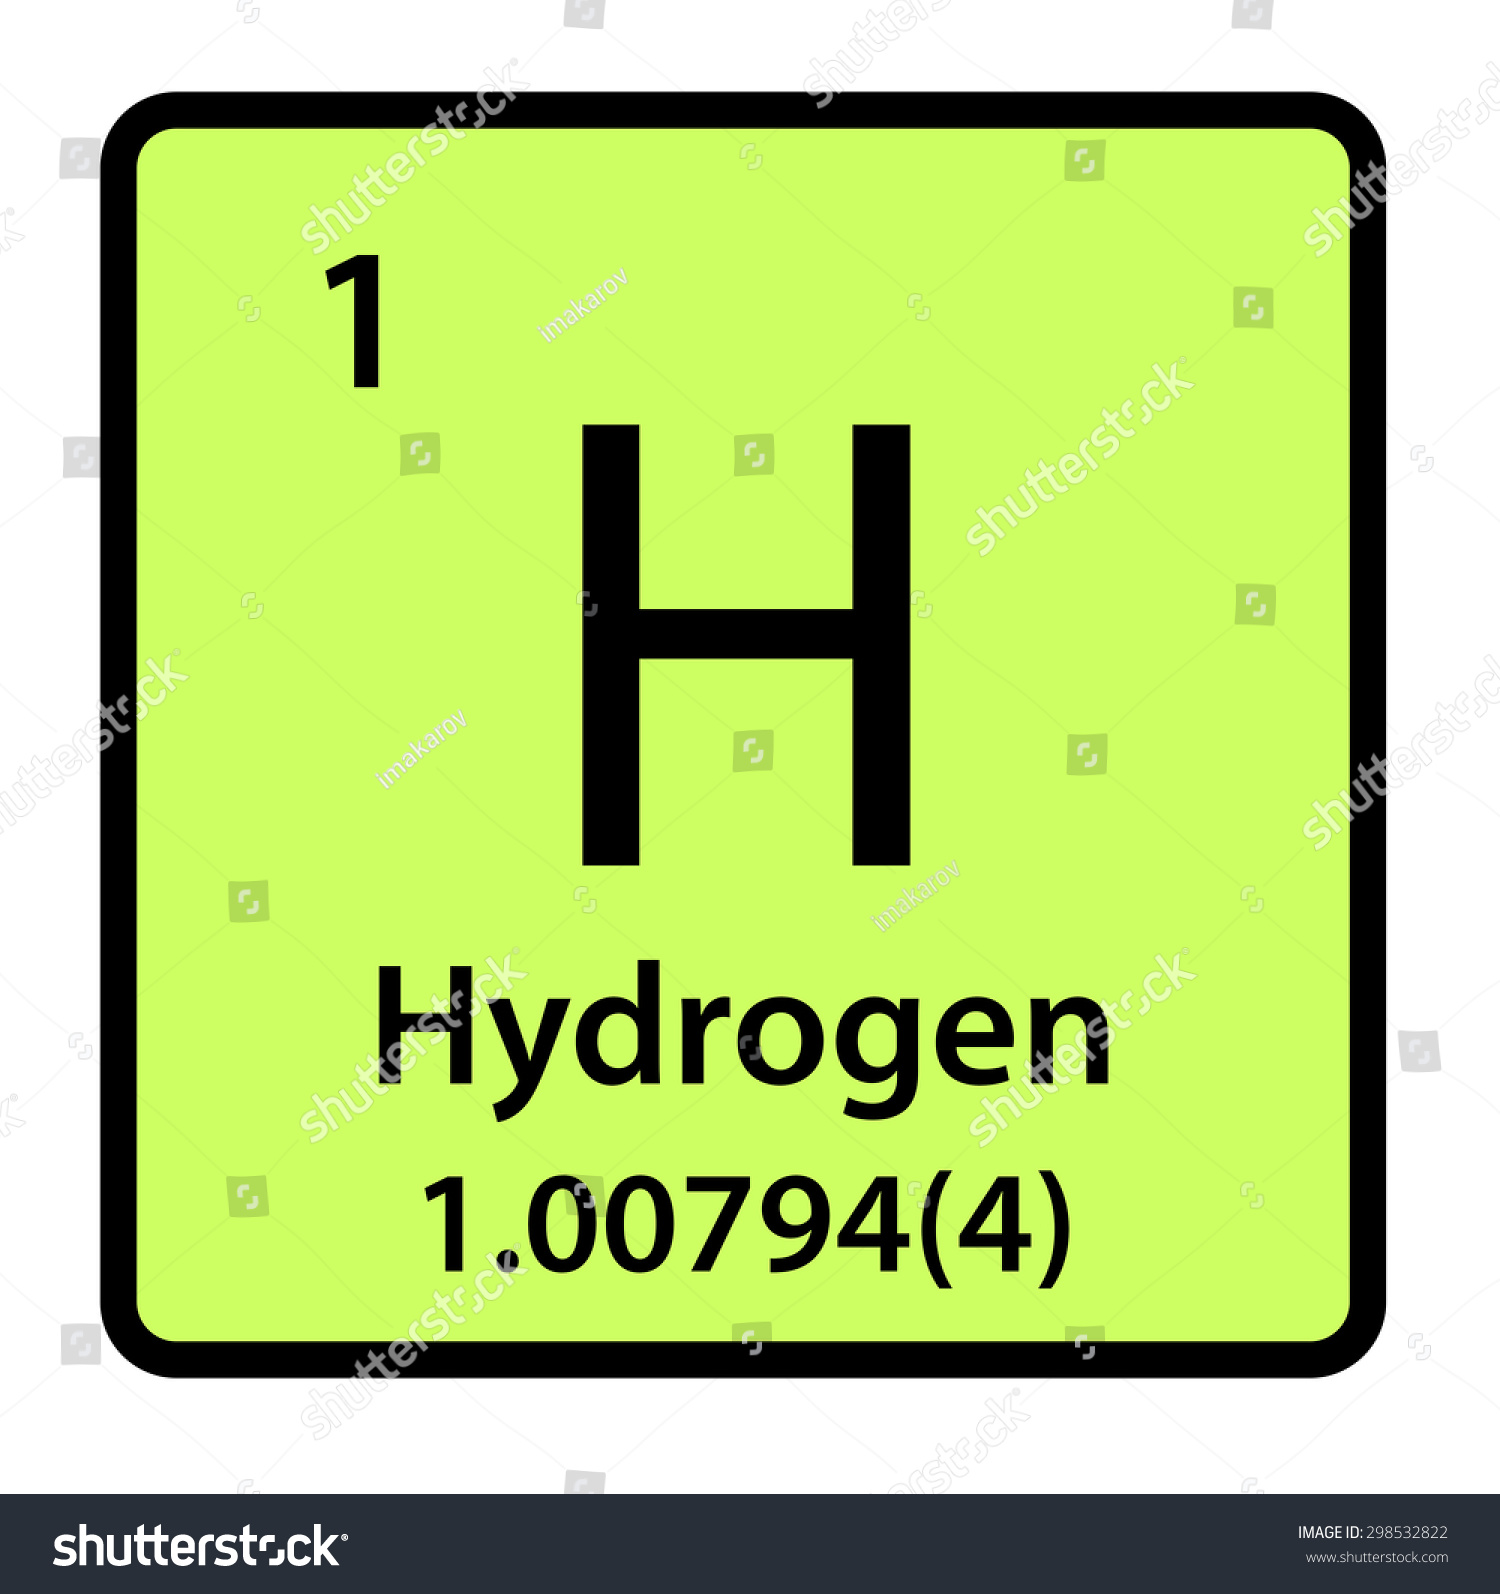 Element hydrogen periodic table stock illustration 298532822 element hydrogen of the periodic table gamestrikefo Choice Image